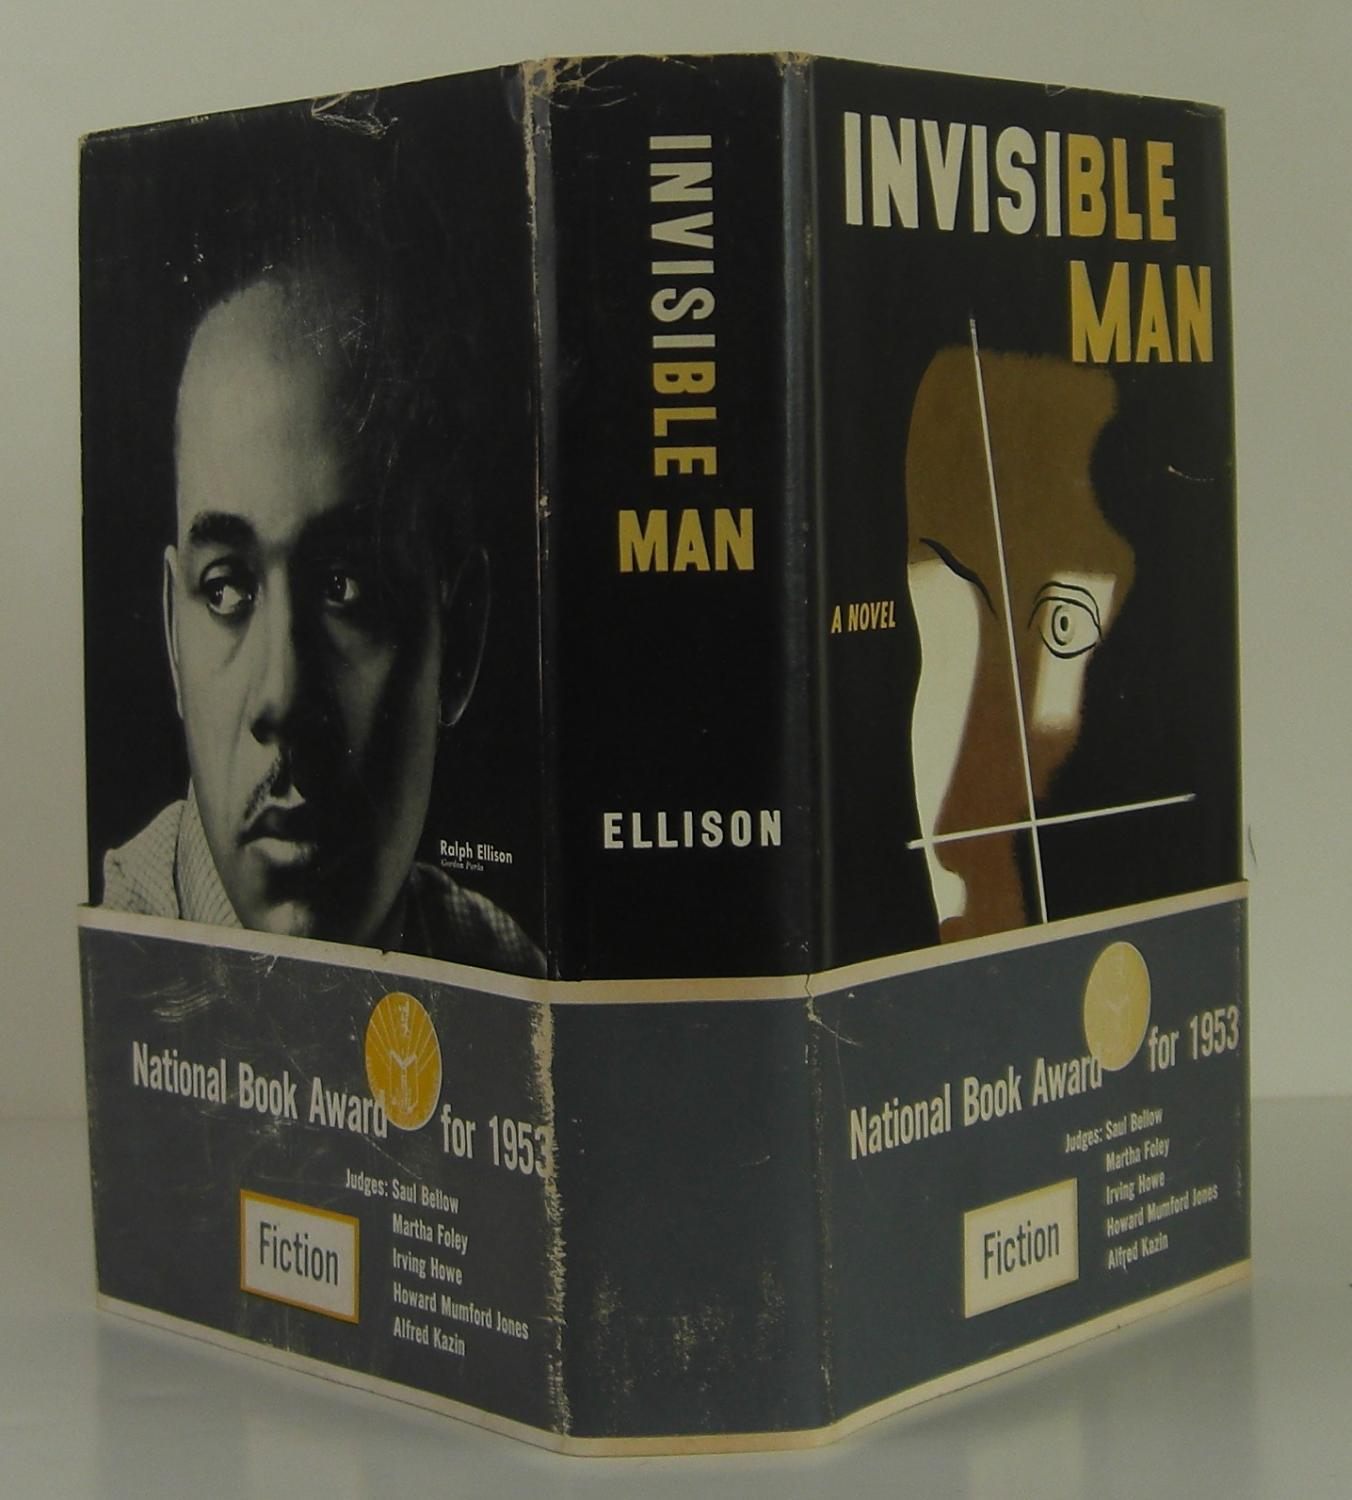 an analysis of doll imagery in ralph ellisons the invisible man Below is an essay on symbolism and motifs in invisible man from anti essays, your source for research papers, essays, and term paper examples symbolism and motifs in invisible man ralph ellison's novel, invisible man, is a story based on true events that the narrator overcomes throughout his life.